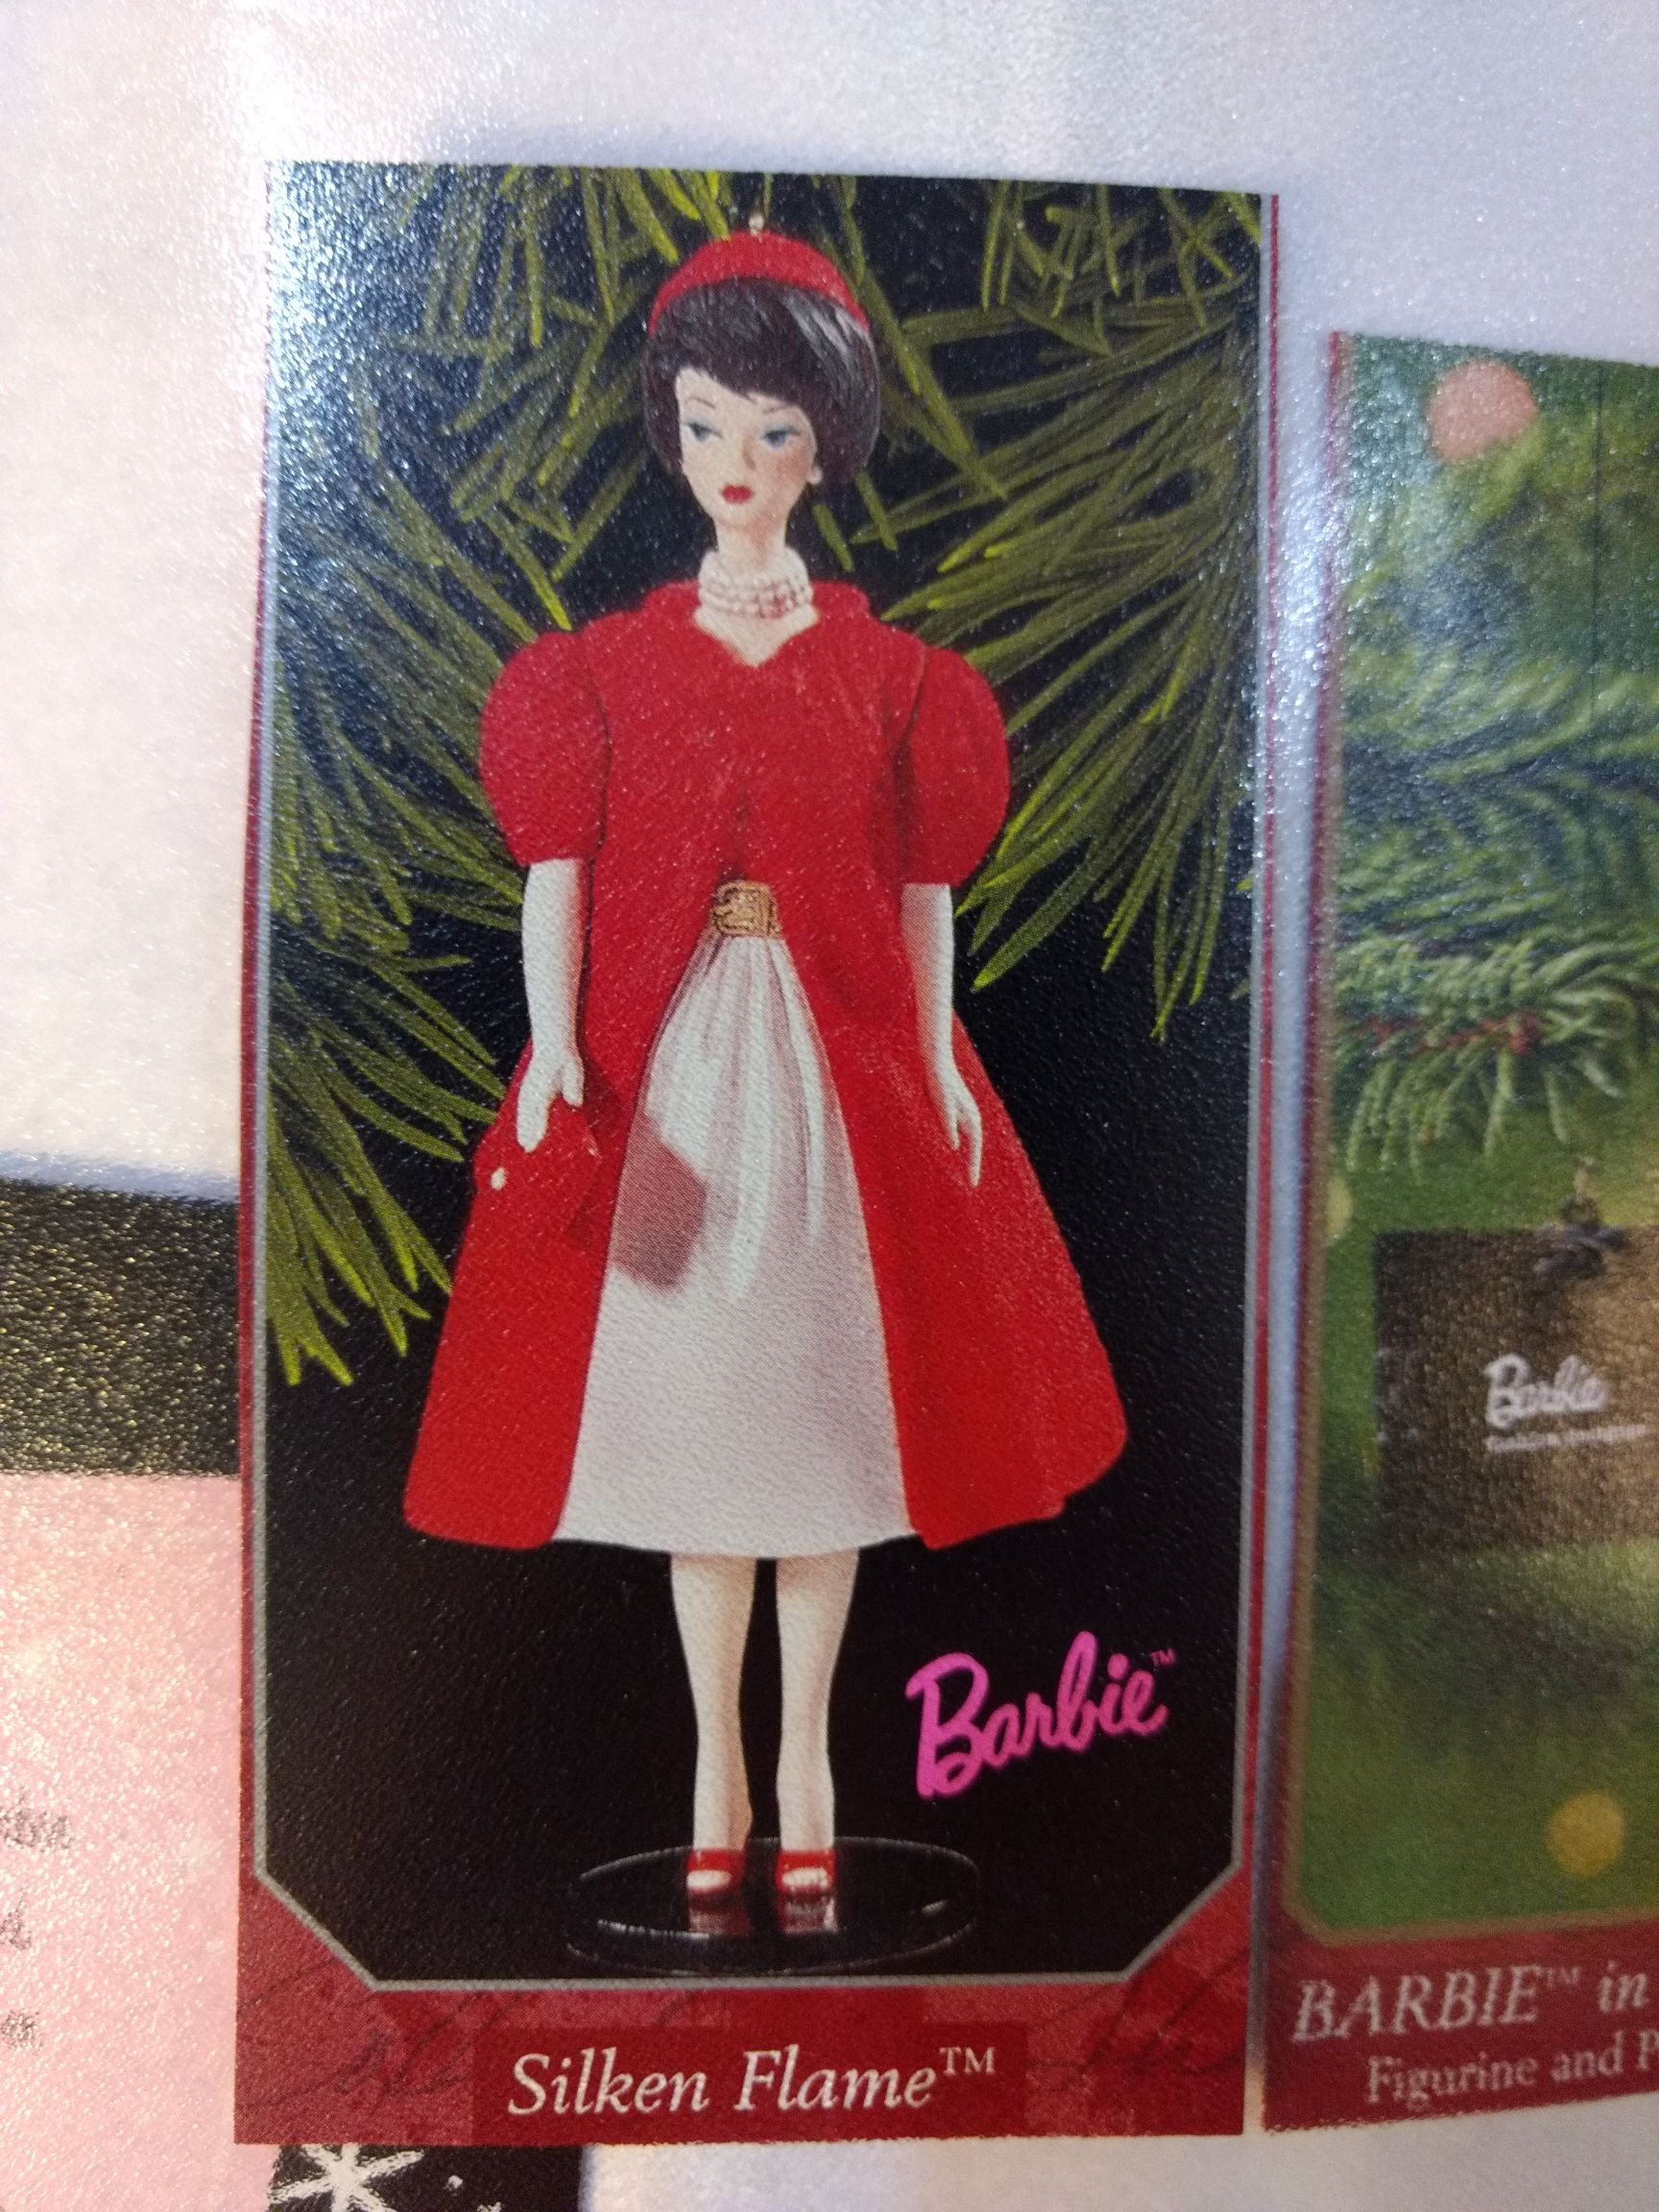 Barbie - Collectible - Silkin Flame Ornament - Hallmark front image (front cover)